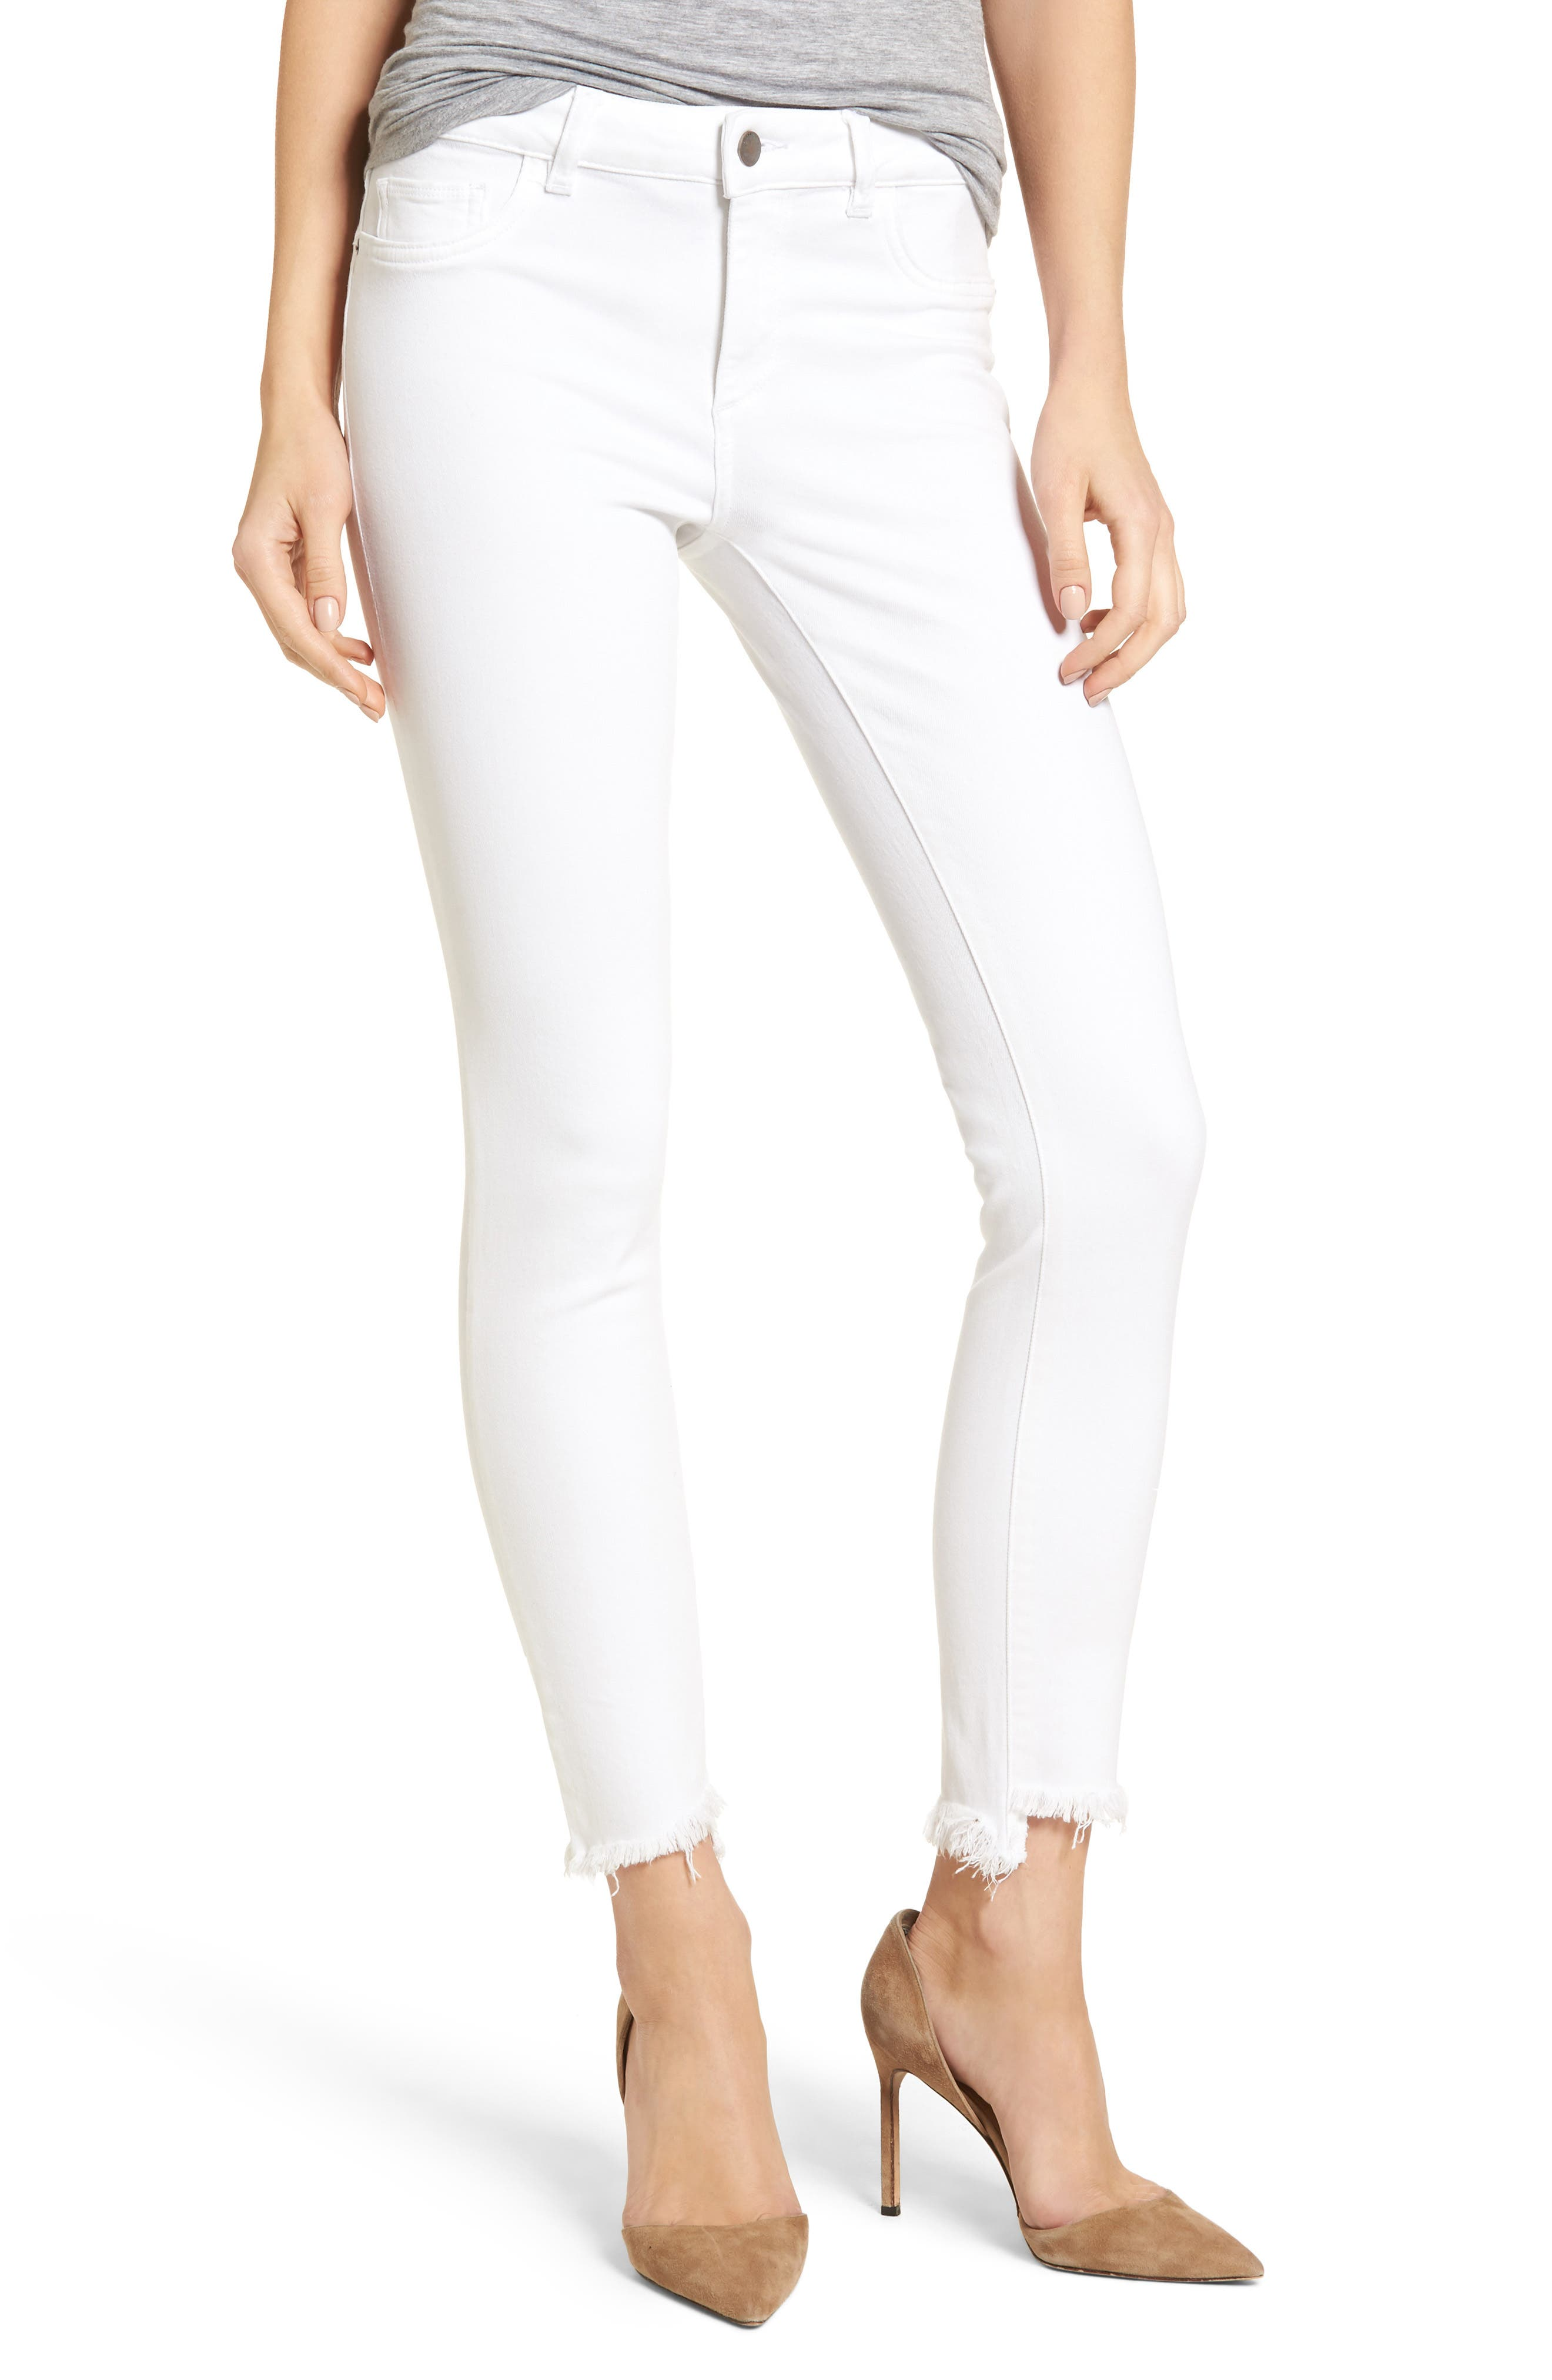 Main Image - DL1961 Margaux Instasculpt Ankle Skinny Jeans (Catalina)